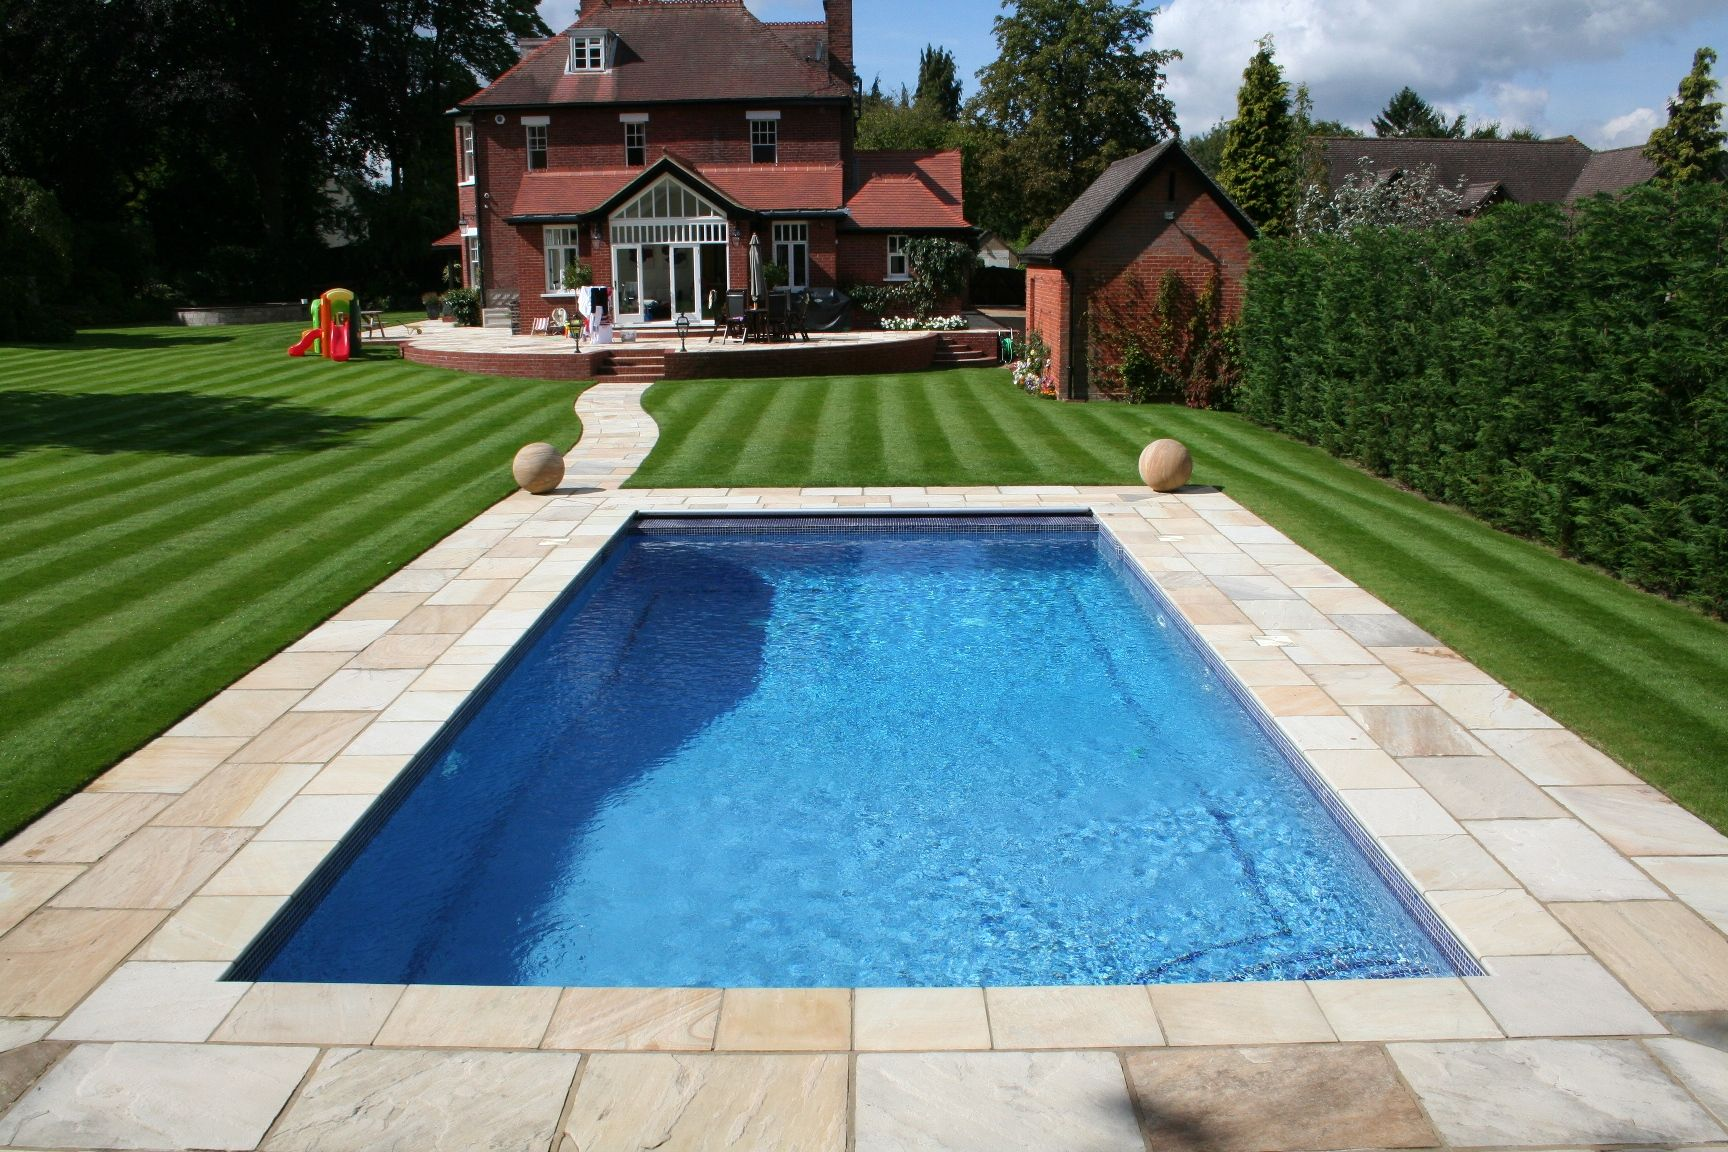 Landscaping Ideas For Inground Swimming Pools swimming poolwhat the best in ground backyard pool landscaping ideas you can choose How To Take Care Of An Inground Swimming Pool